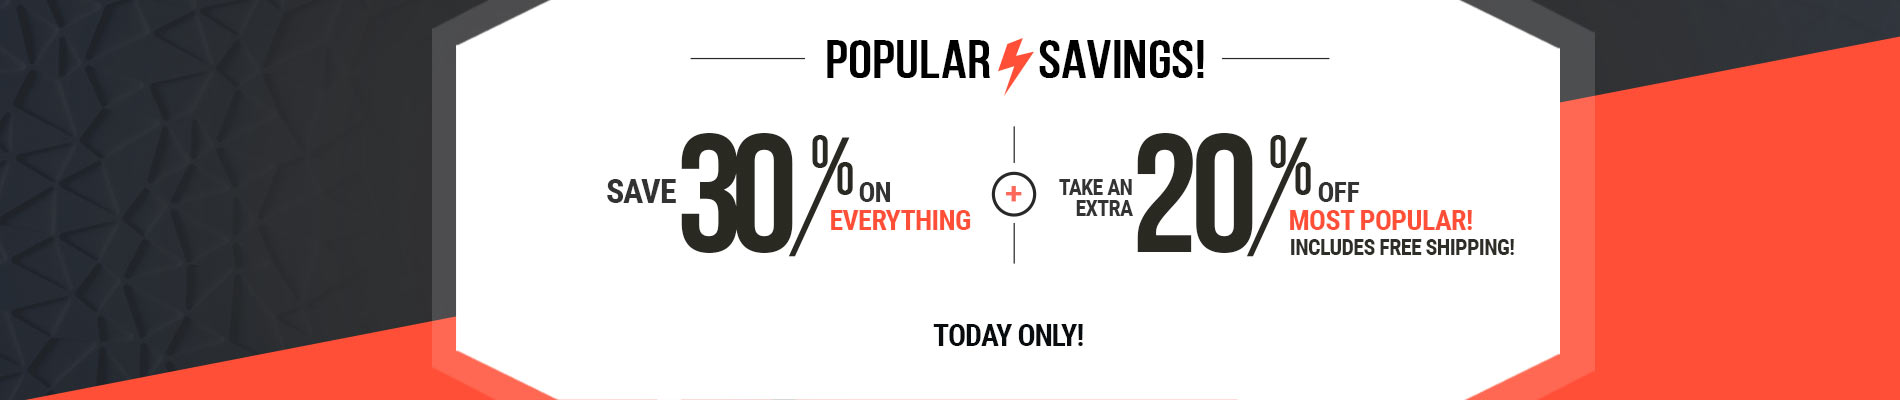 Save 30% on Everything + 20% Off Most Popular